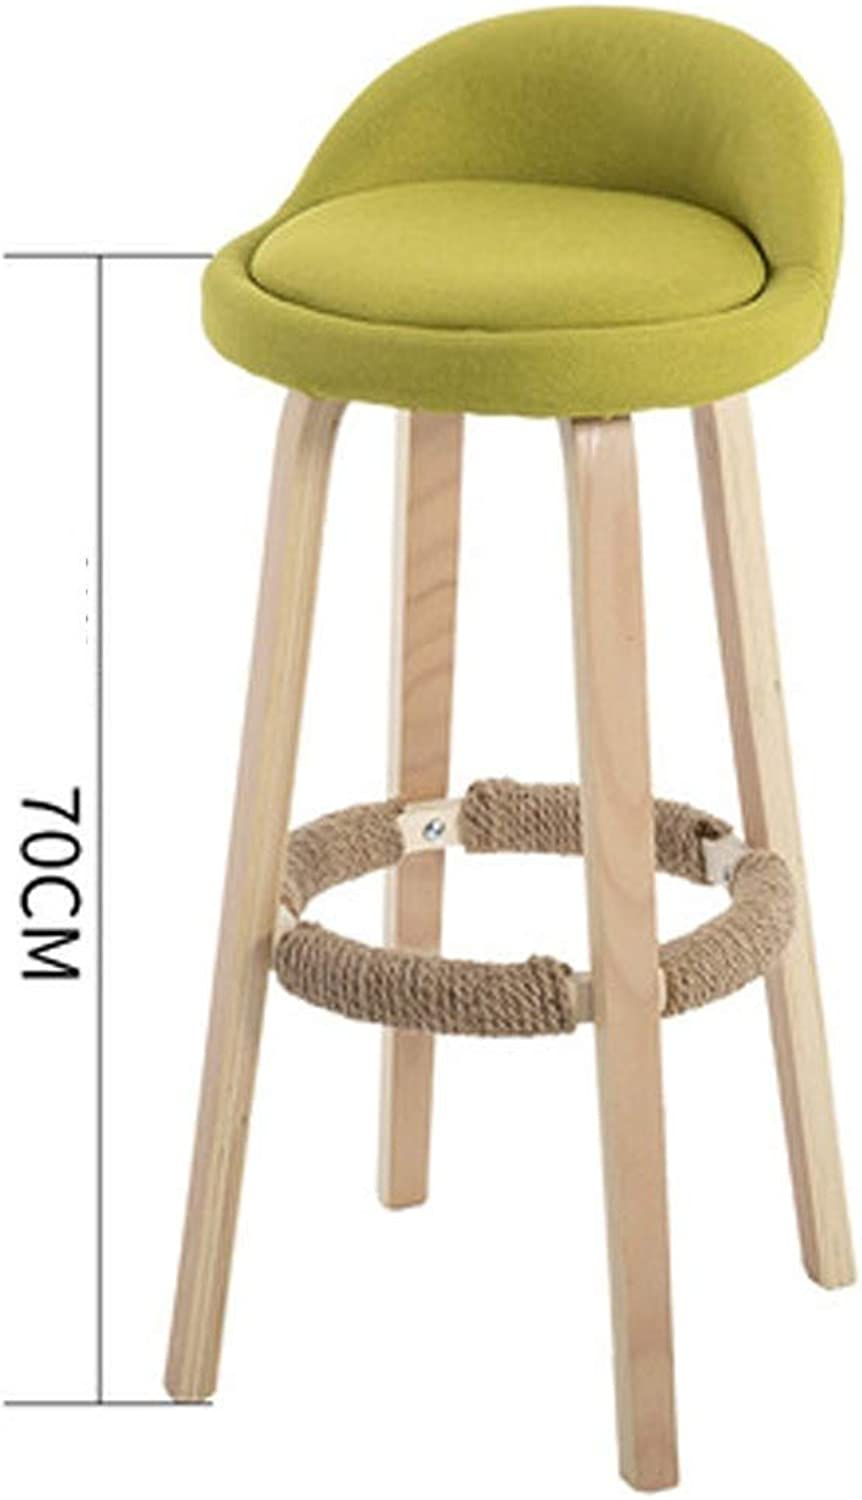 Bar Chair Curved Wood high stools Home bar Stool European bar Chair Front high Chair Front bar Chair Nordic FENPING (color   A)